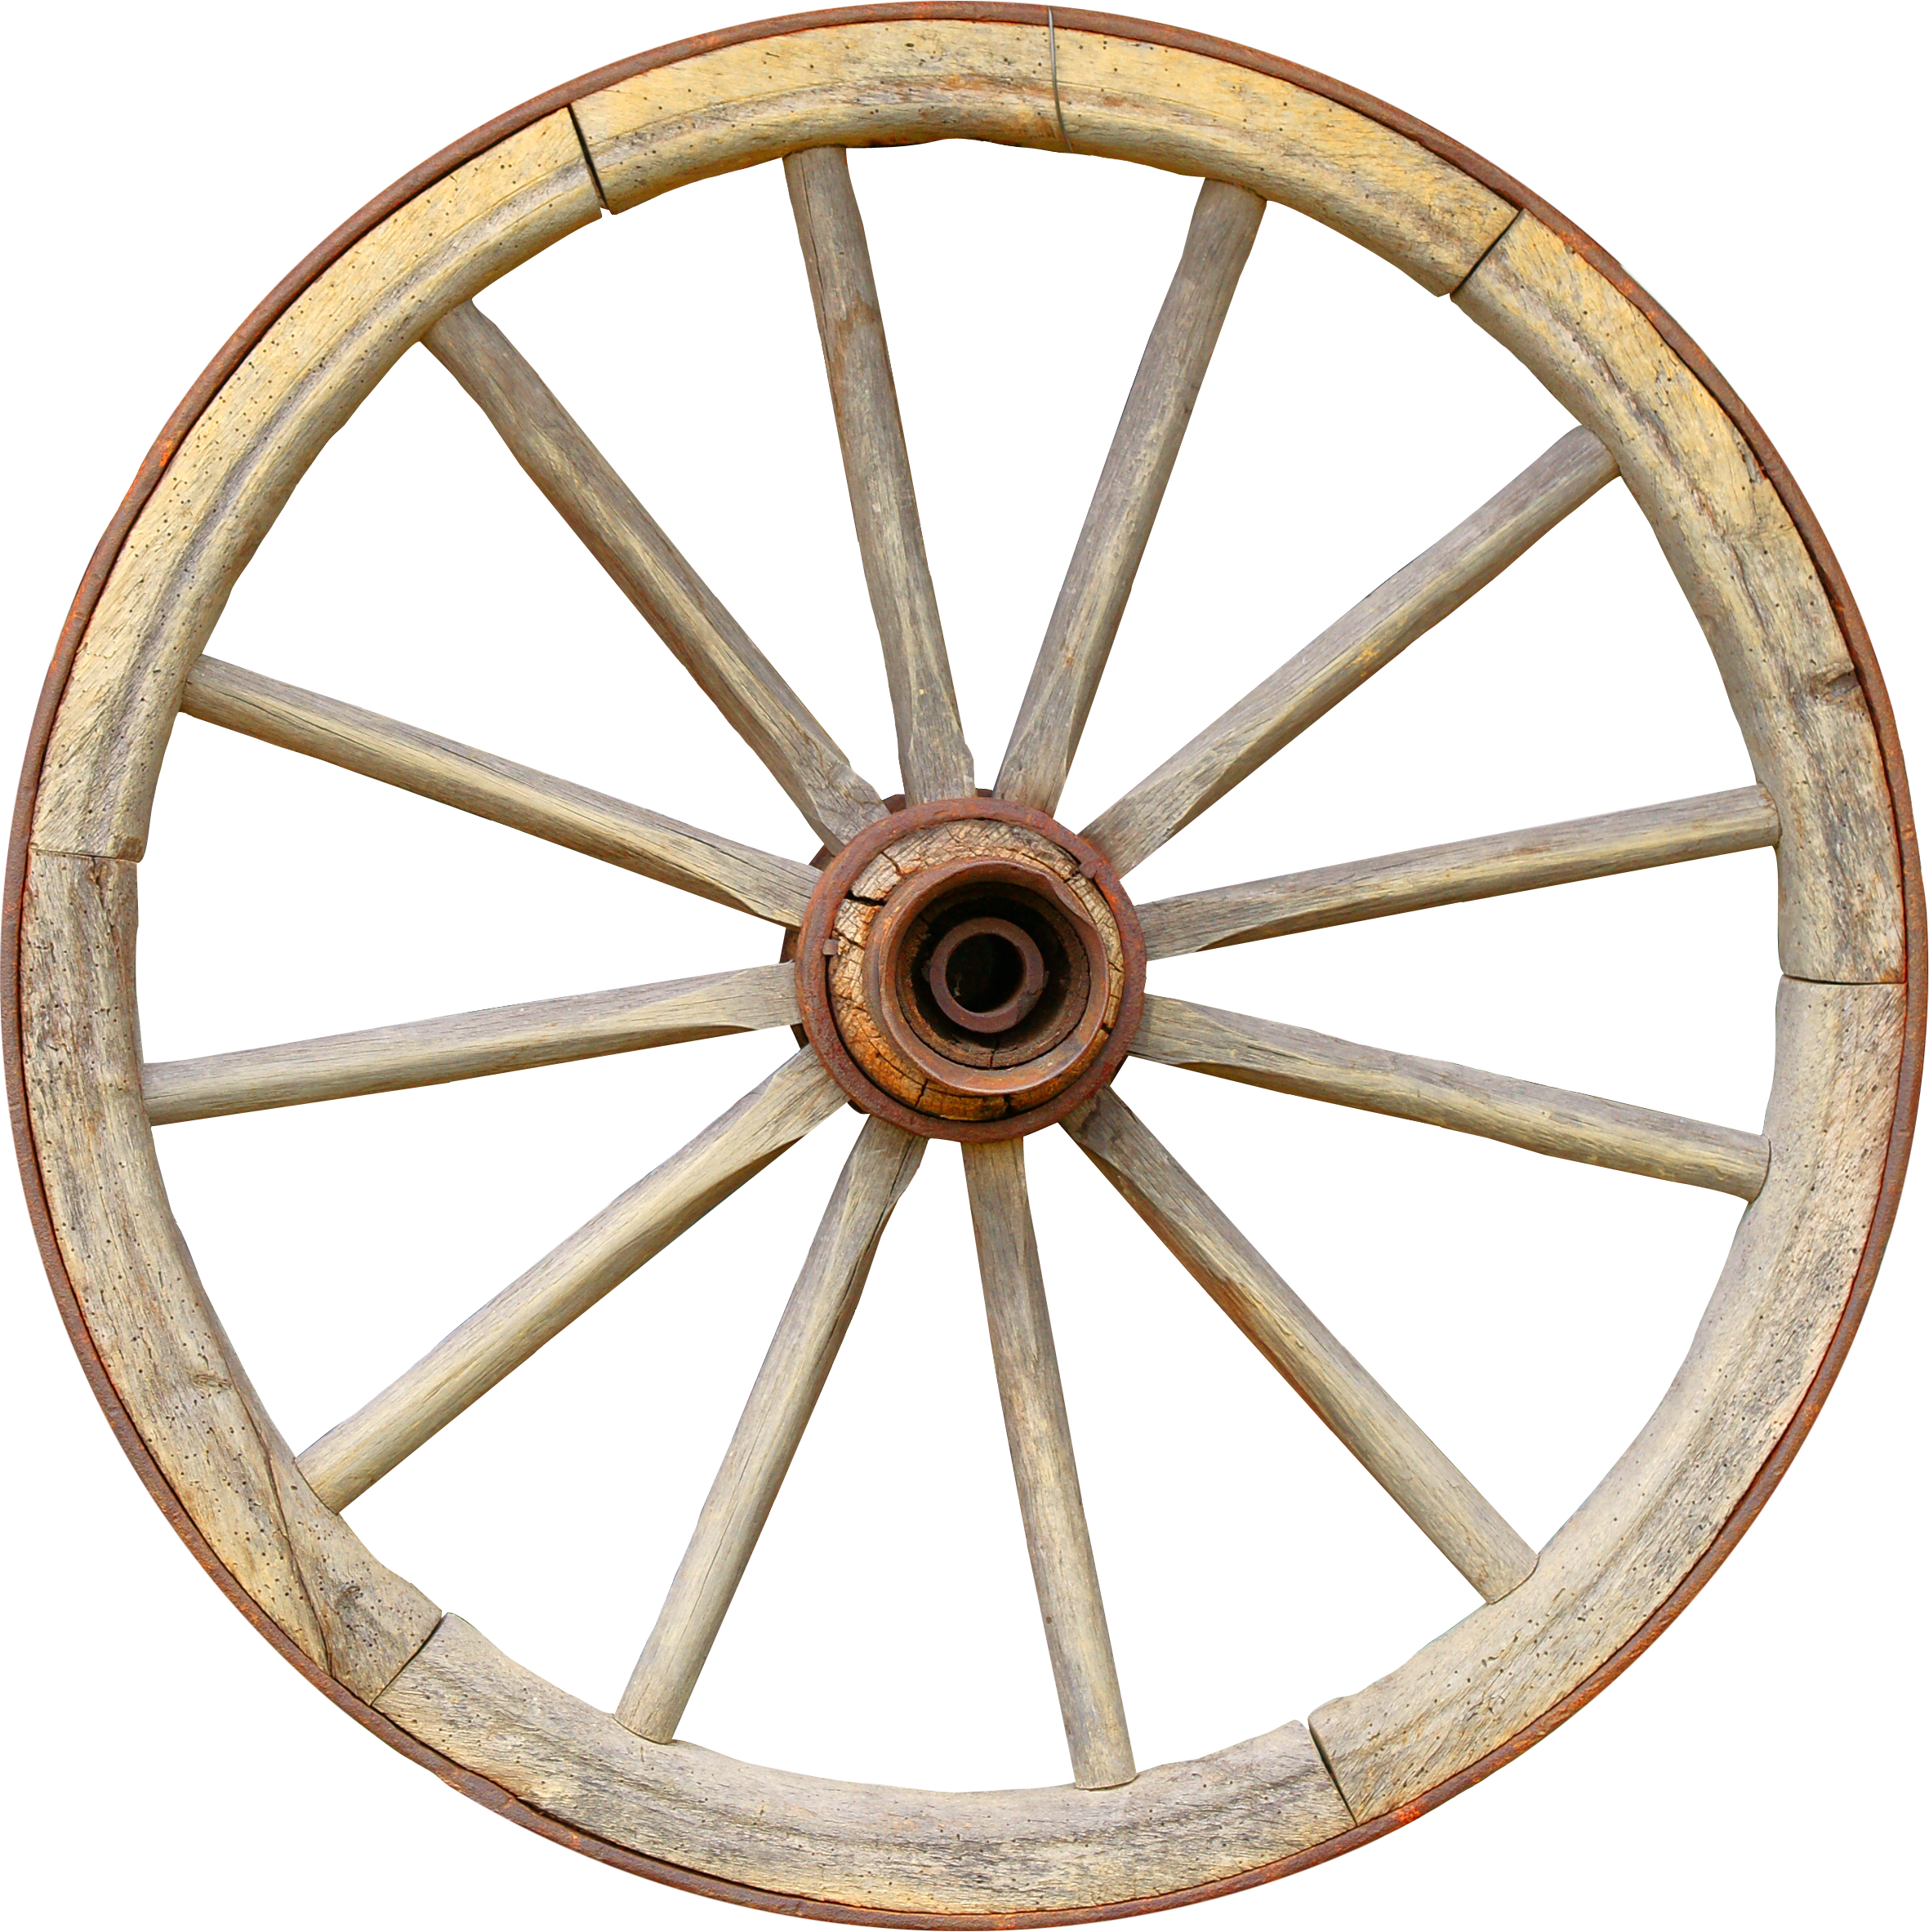 Car Wheel Transport Photography Wagon.